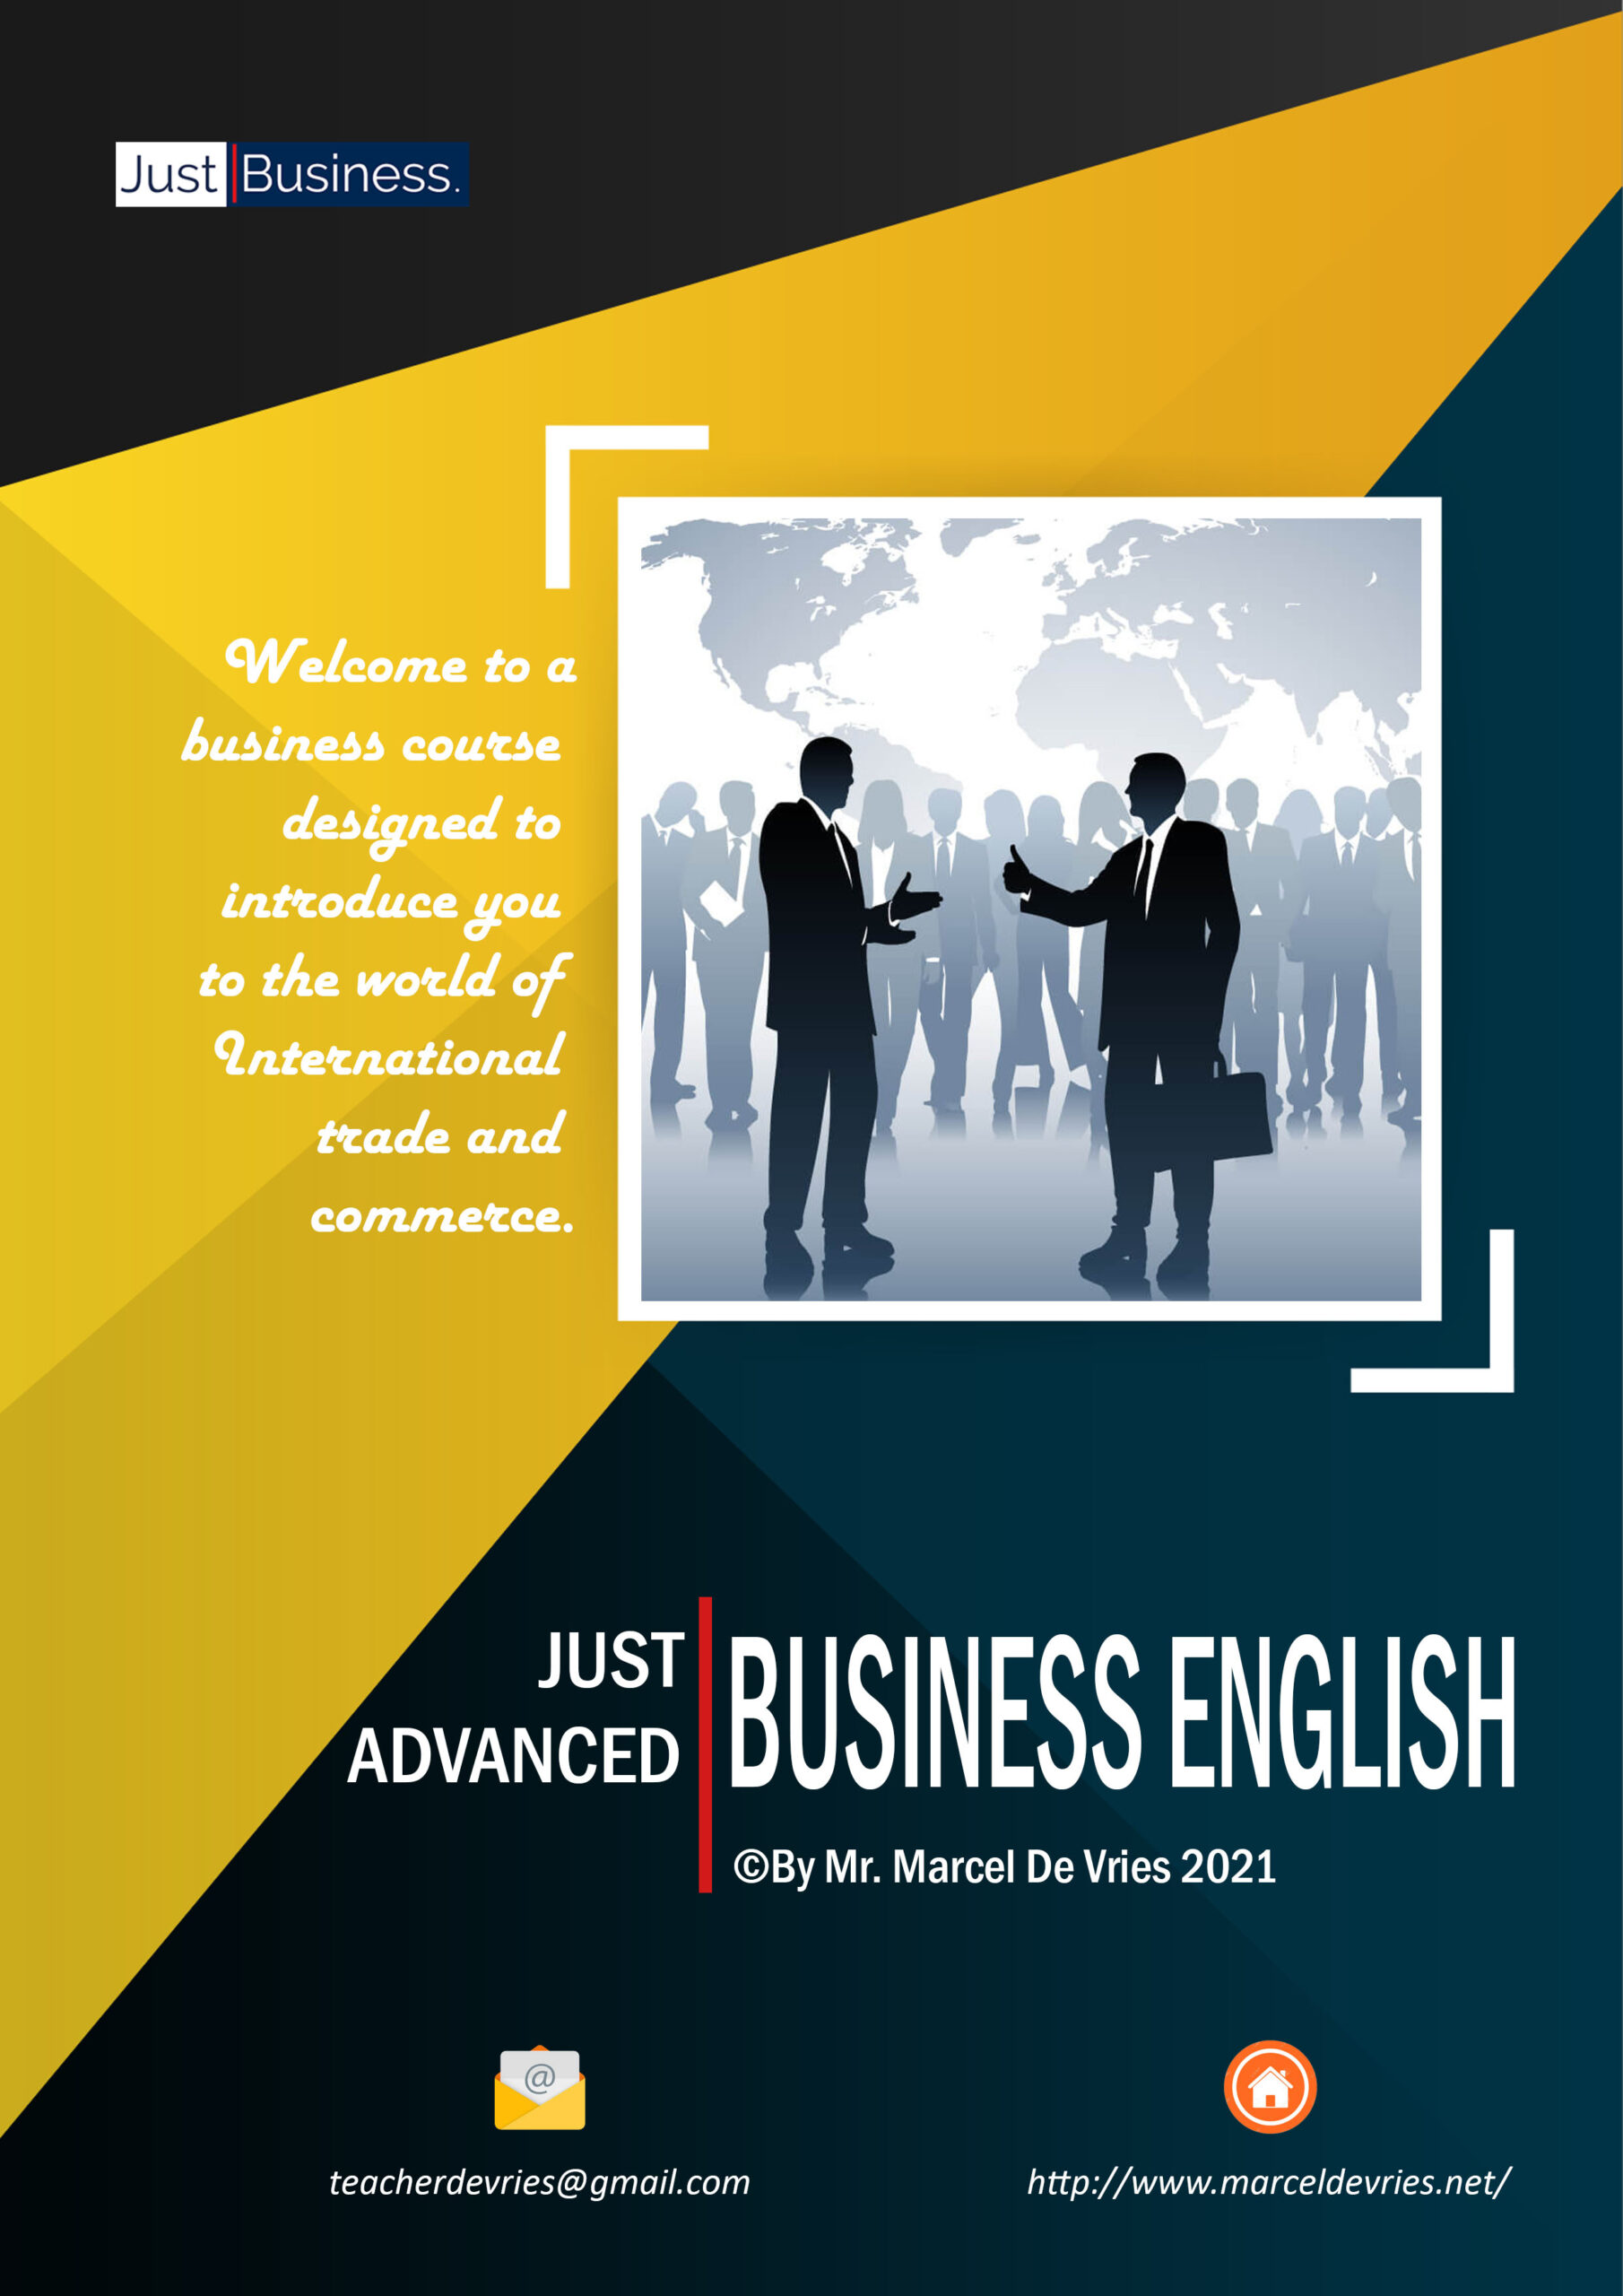 Just Business Advanced Business English